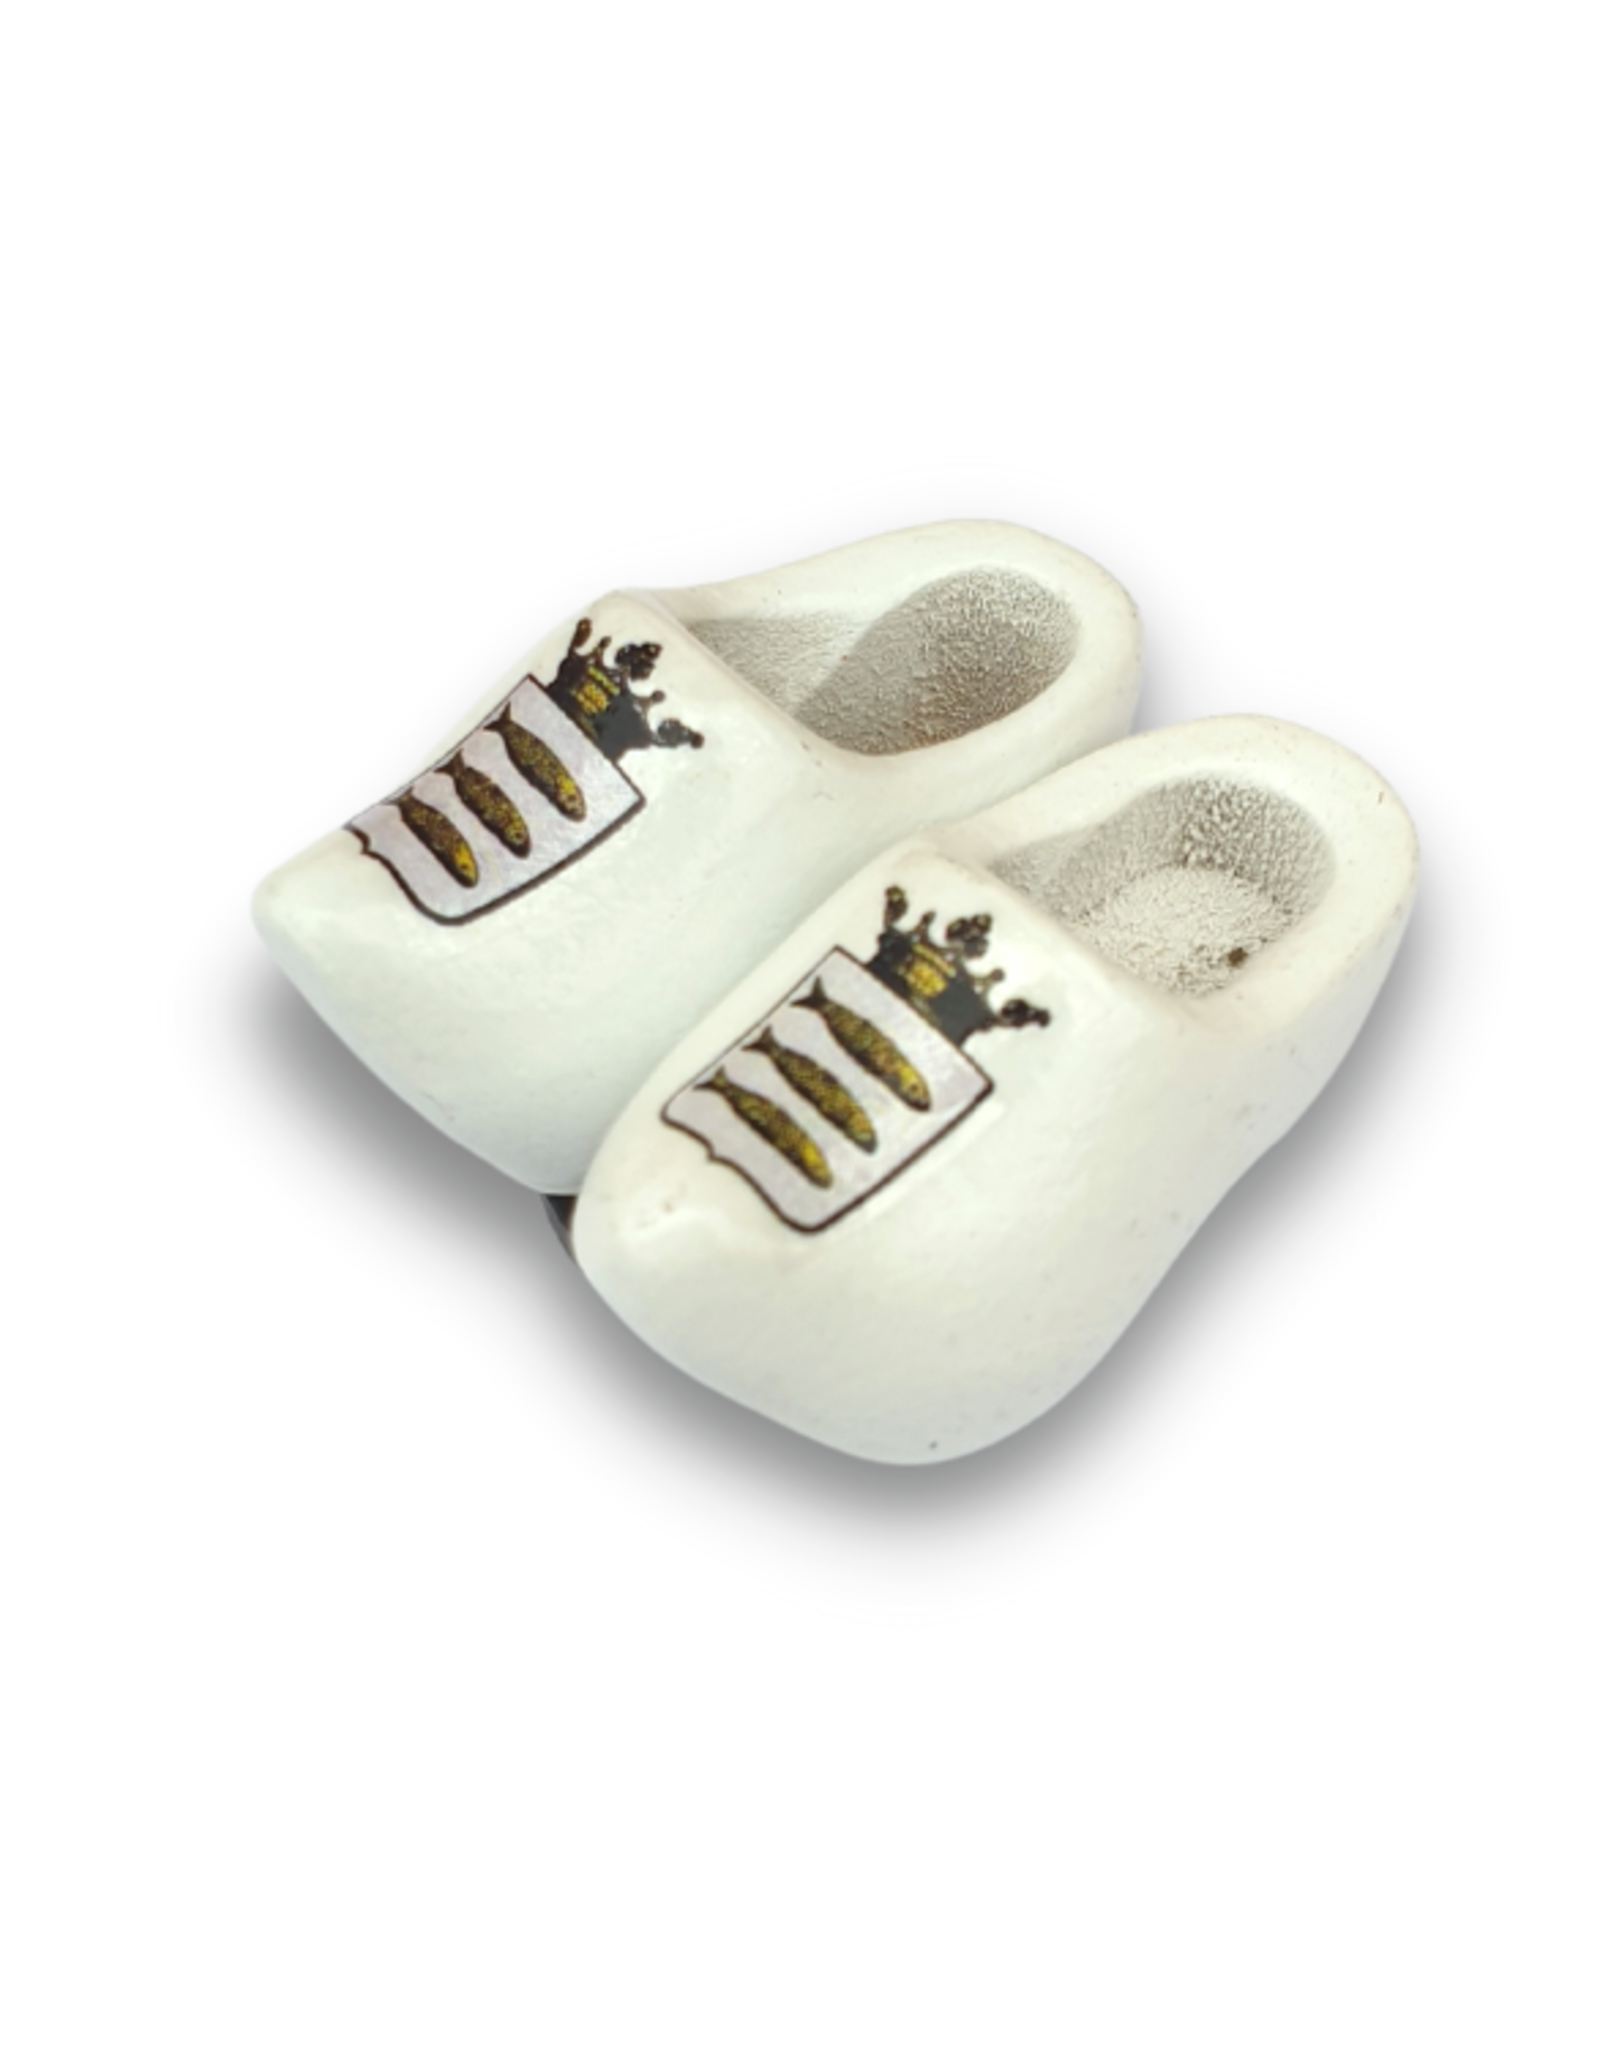 woodenshoe pair magnet white with logo or text